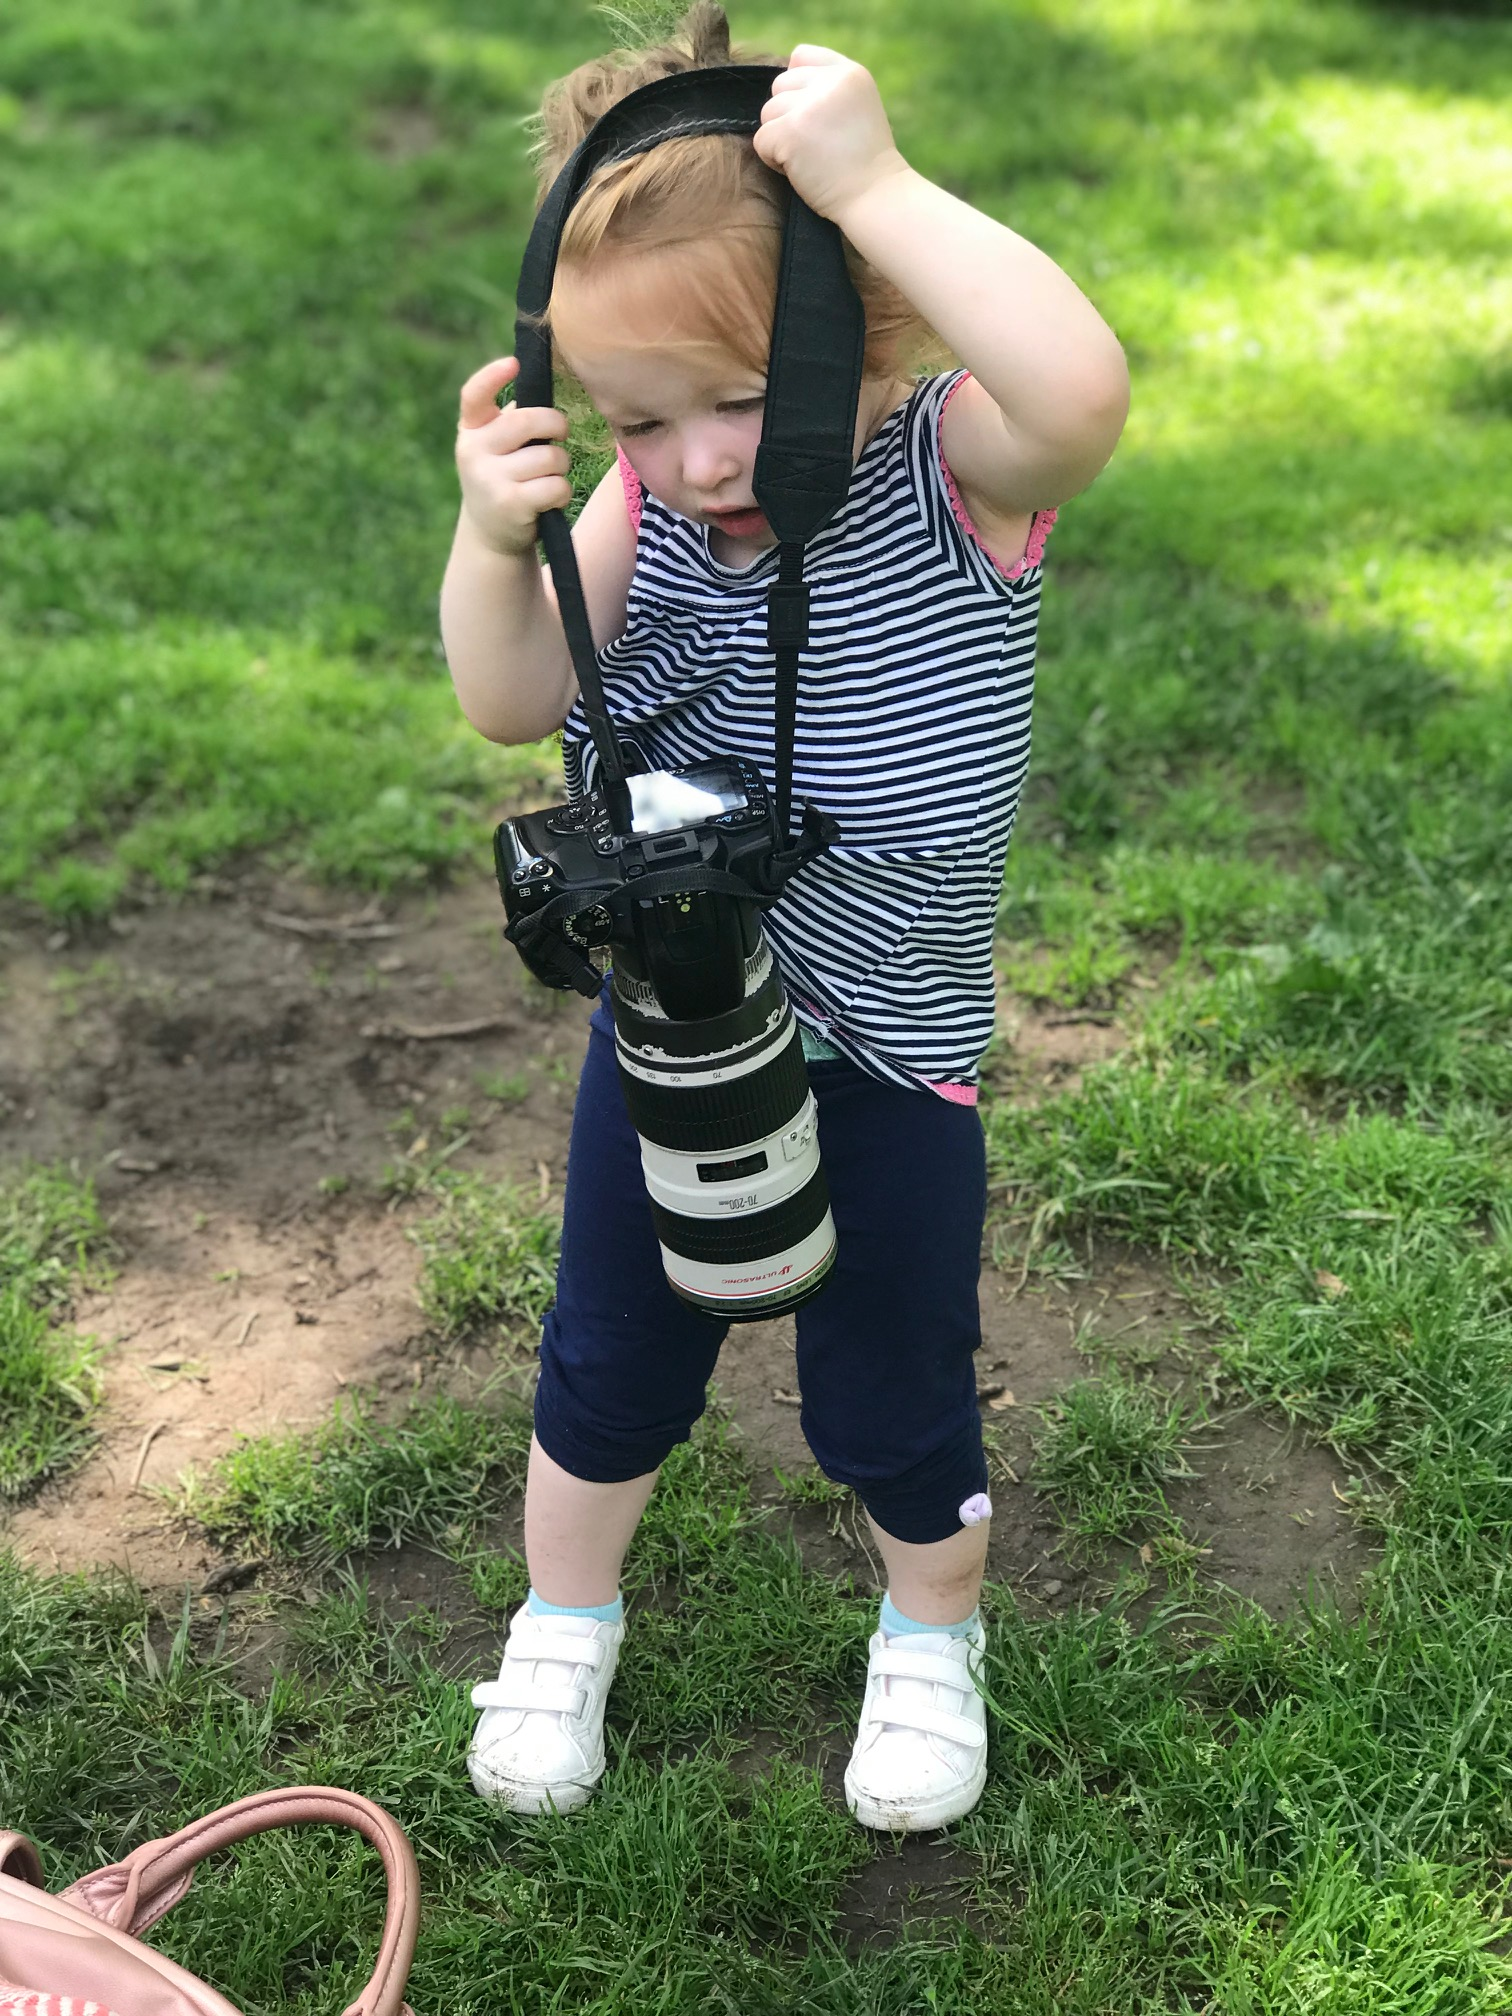 My assistant